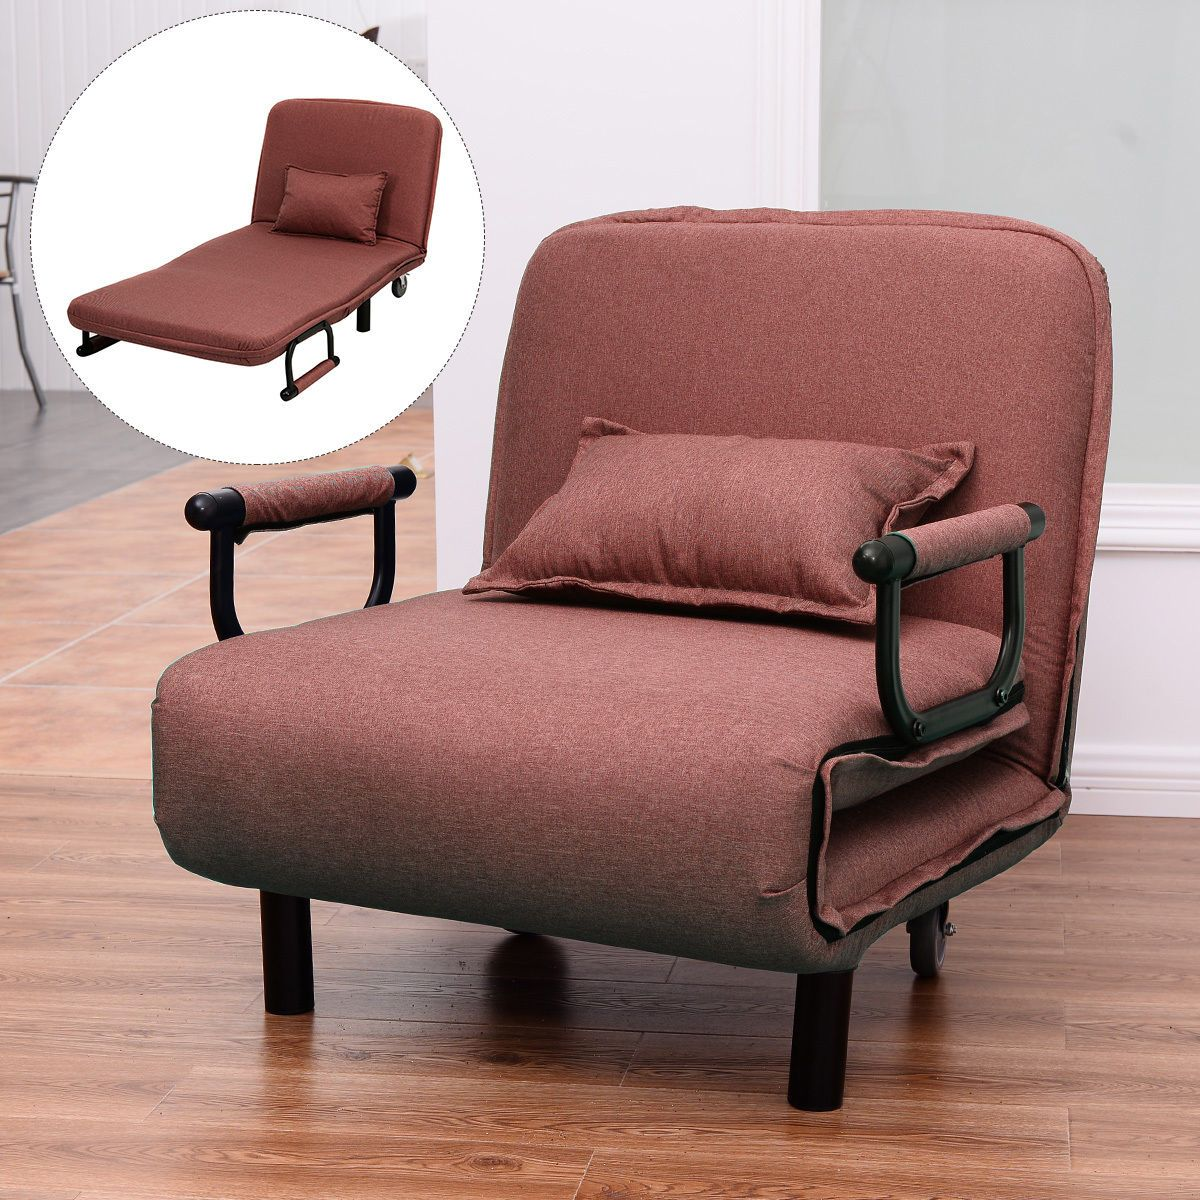 Sofa Bed Folding Arm Chair 29 5 Width Convertible Sleeper Recliner Lounge New Sofa Bed Folding Lounge Chair Chair Sofa Bed